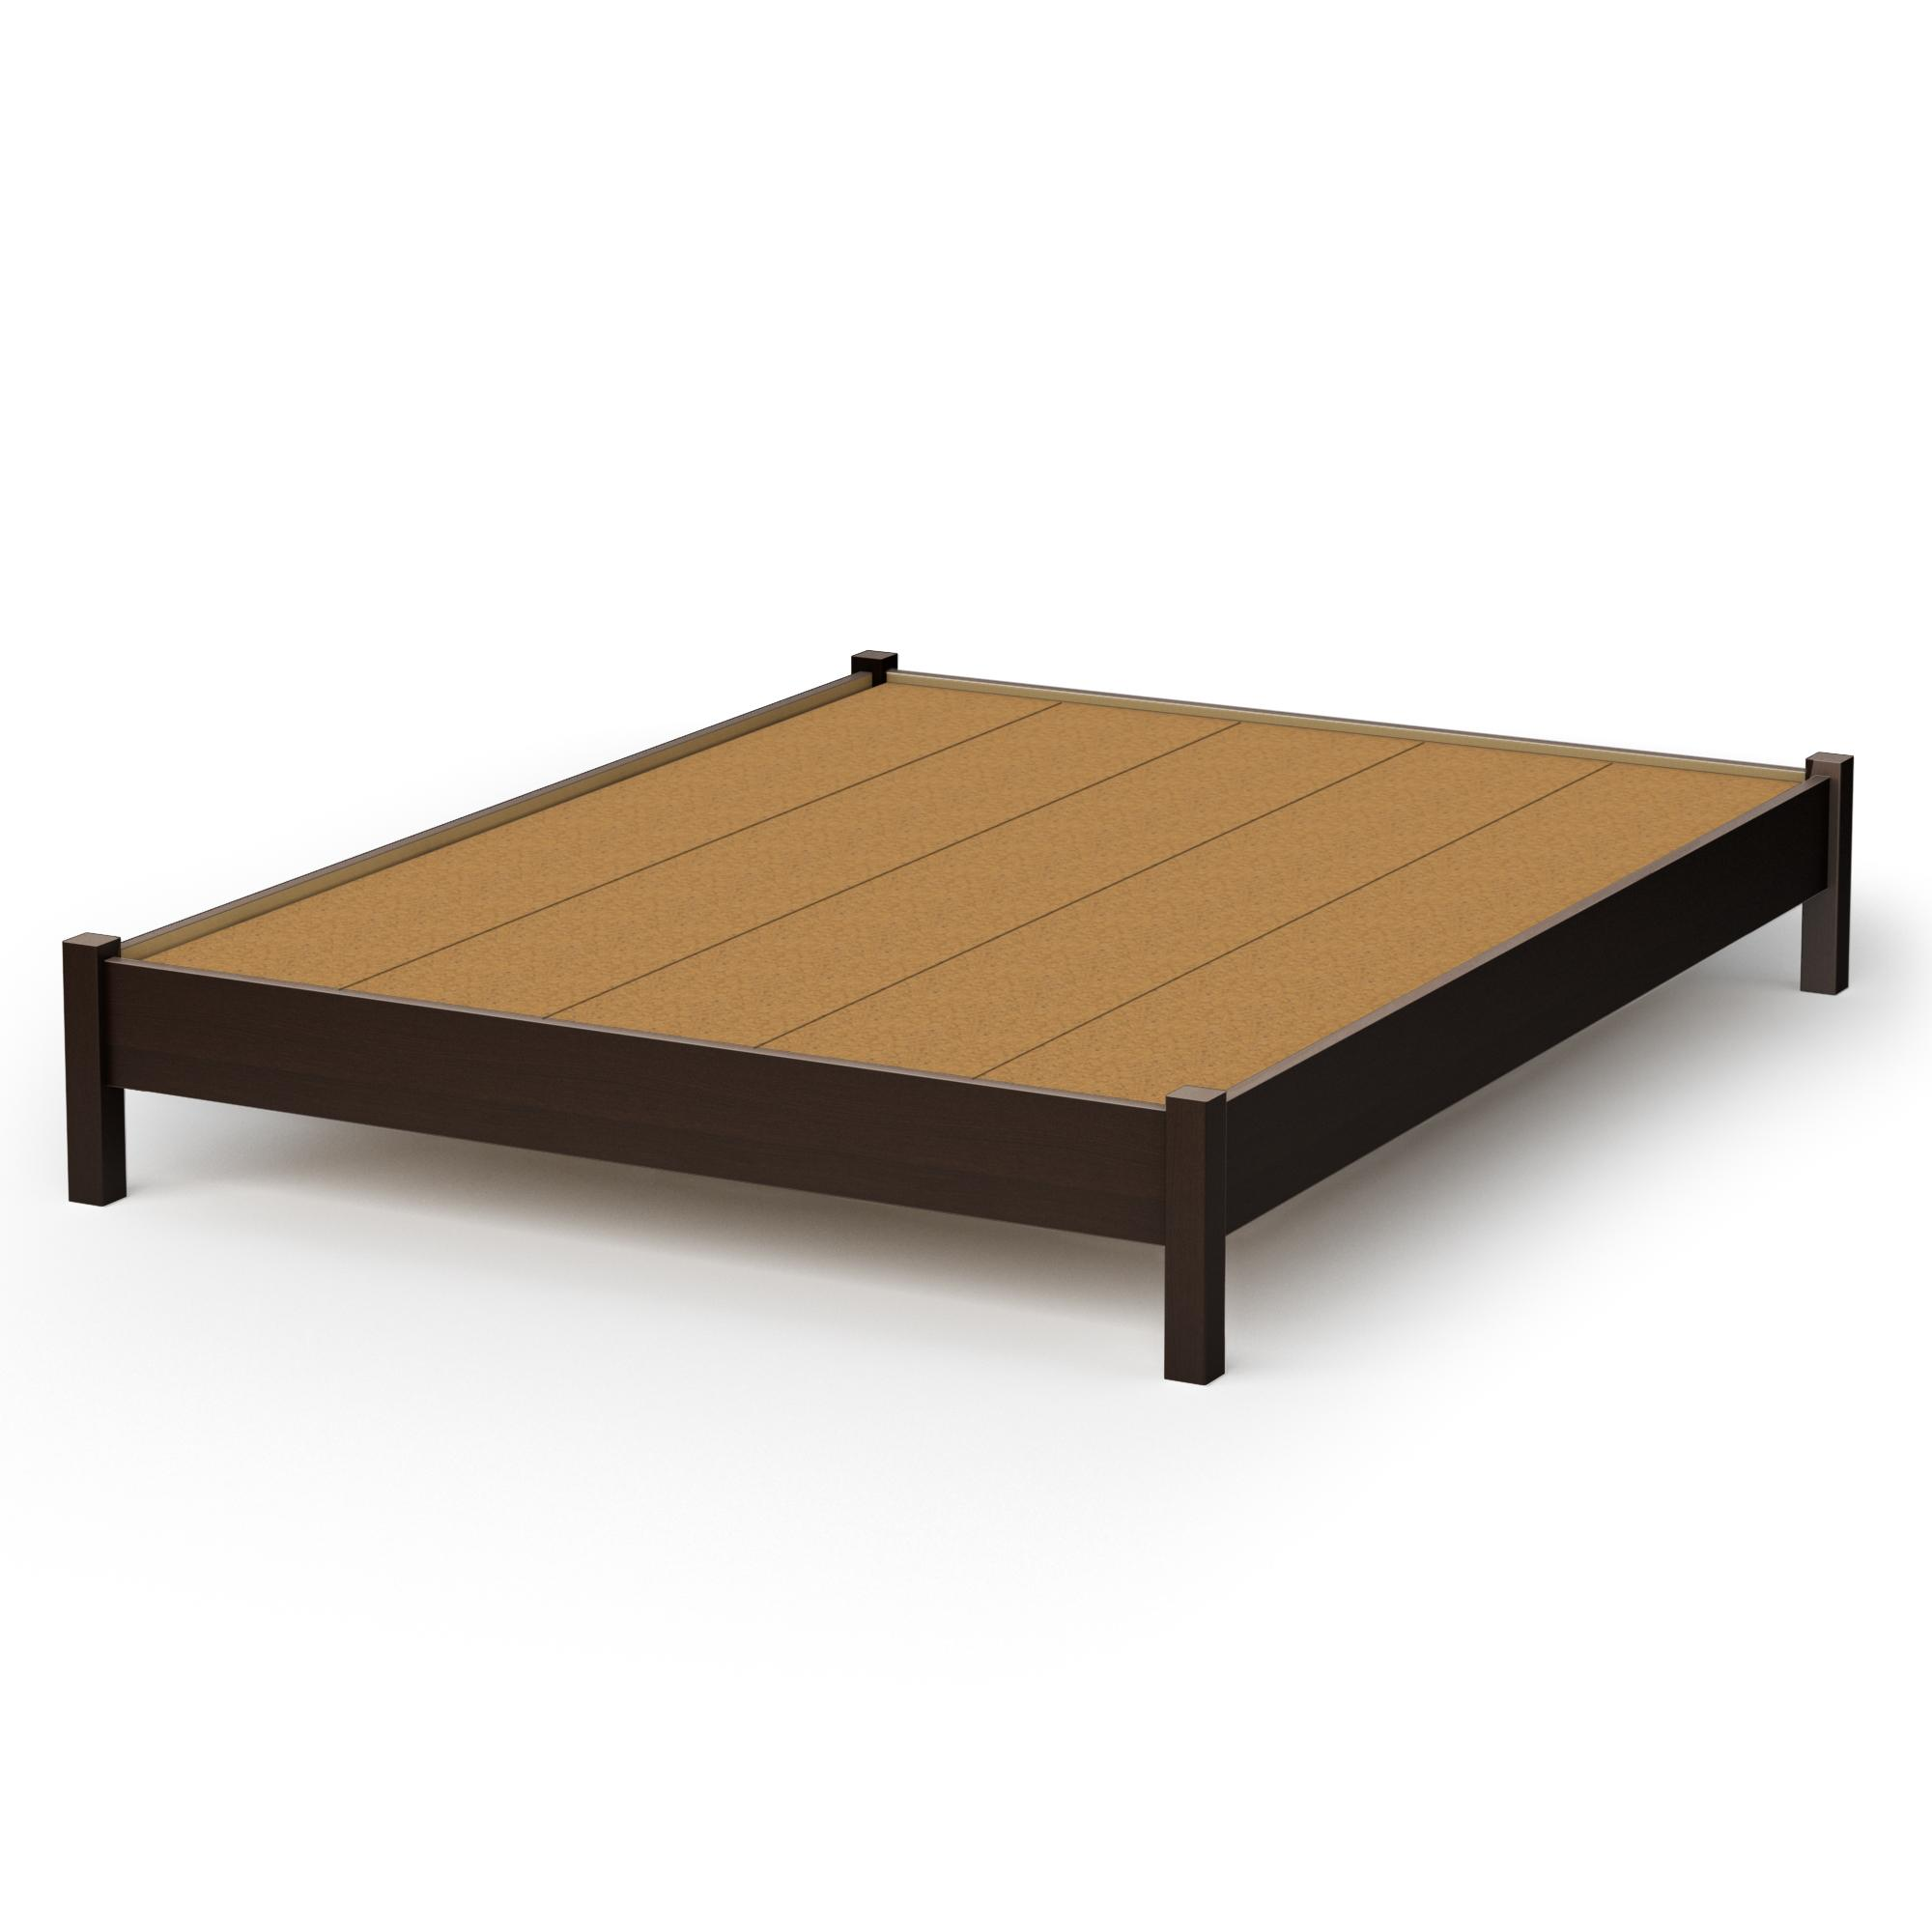 woodworking plans platform bed frame | Woodworking Expert ...